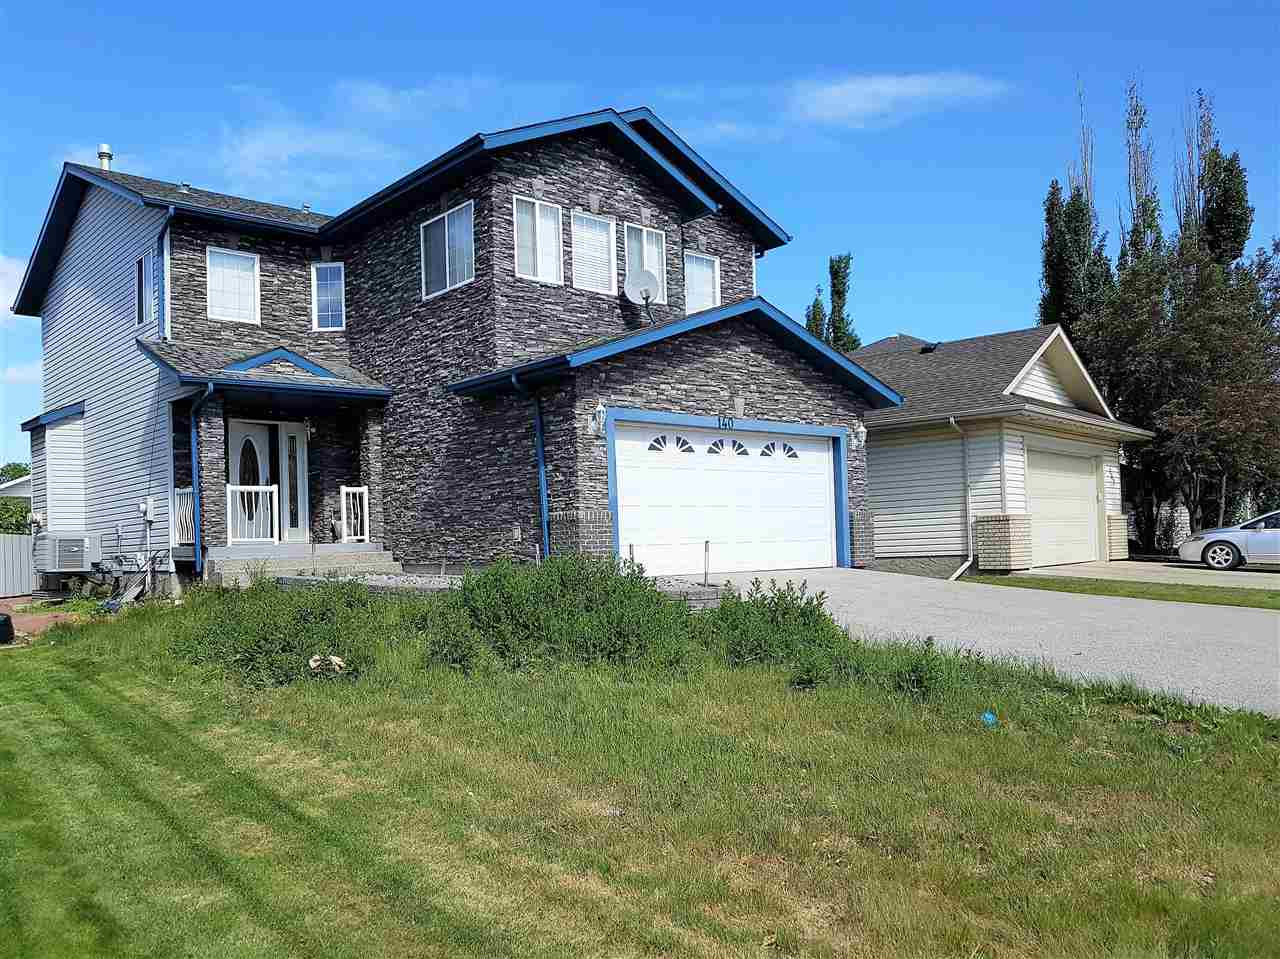 Main Photo: 140 COTE Crescent in Edmonton: Zone 27 House for sale : MLS®# E4132507